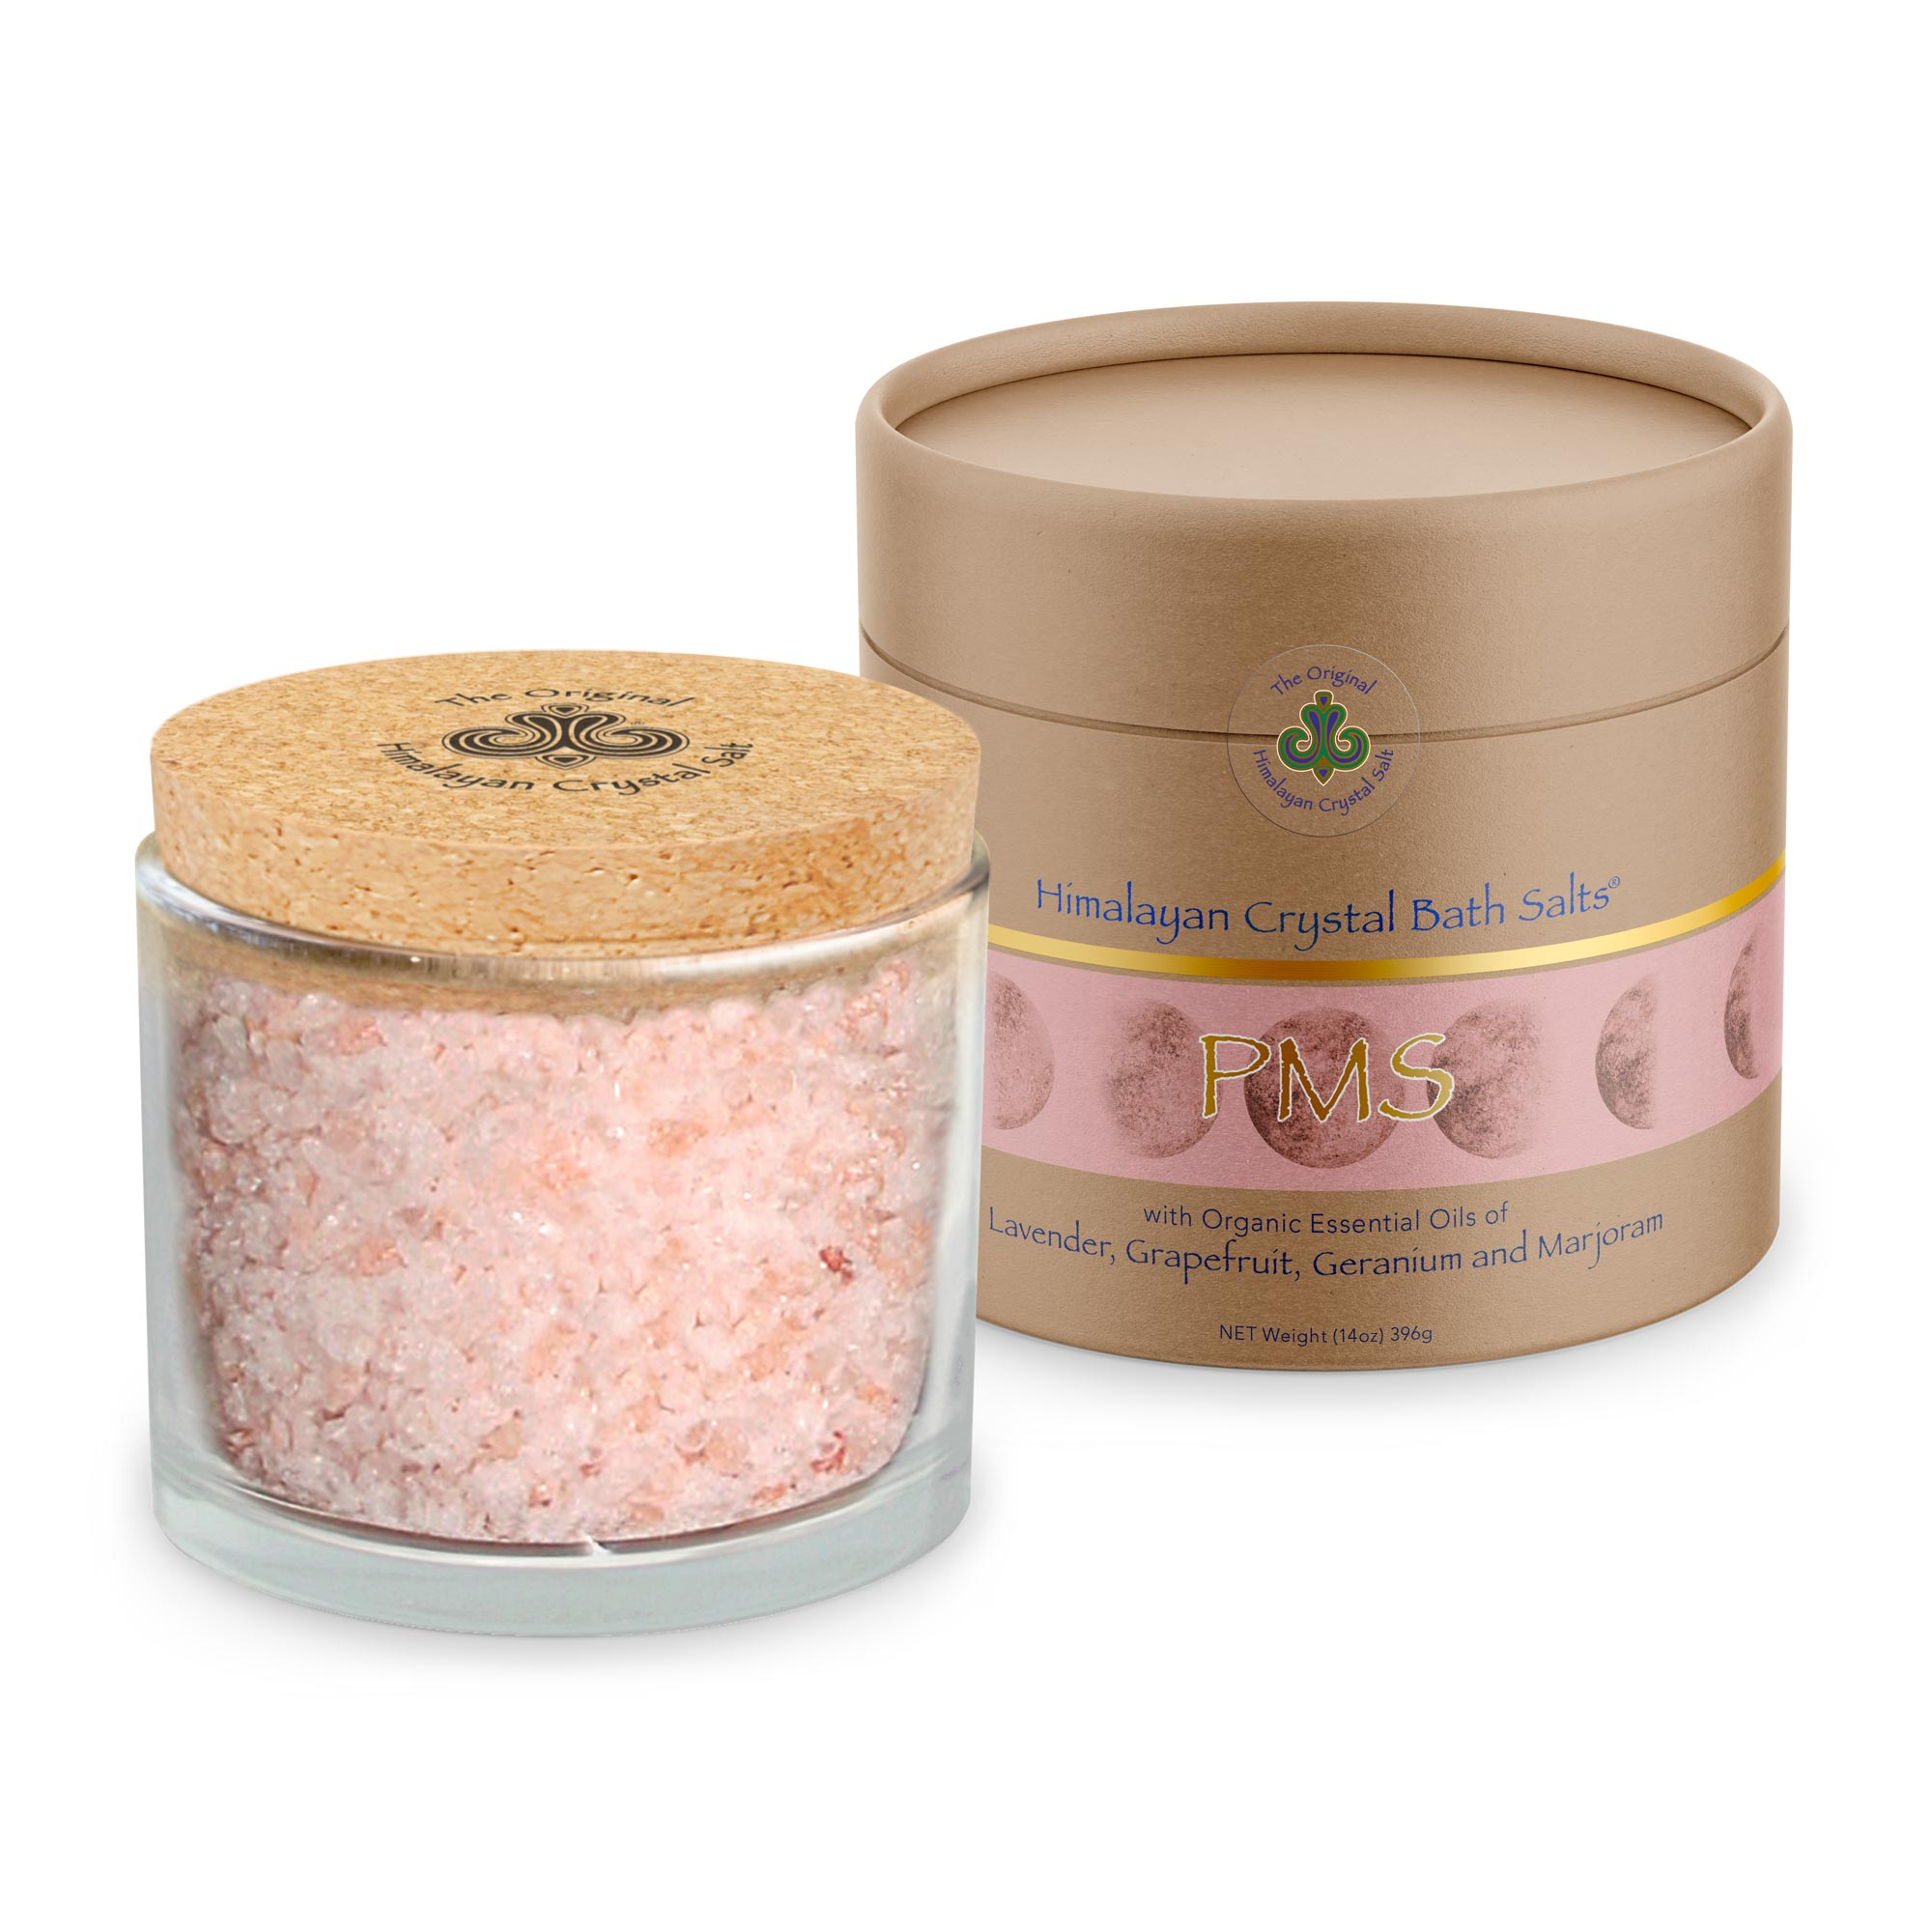 "These Original Himalayan Crystal bath salts with 100% organic lavender, grapefruit, germanium, and marjoram essential oils bring your ""me time"" to a whole new level.   Designed specifically for indulgent self-care during the time of the month that you may not be feeling at your best but can be enjoyed at any time of your cycle.  The scents of lavender, grapefruit, germanium, and marjoram provide an uplifting and calming experience while helping to soothe aches as you soak your worries away."